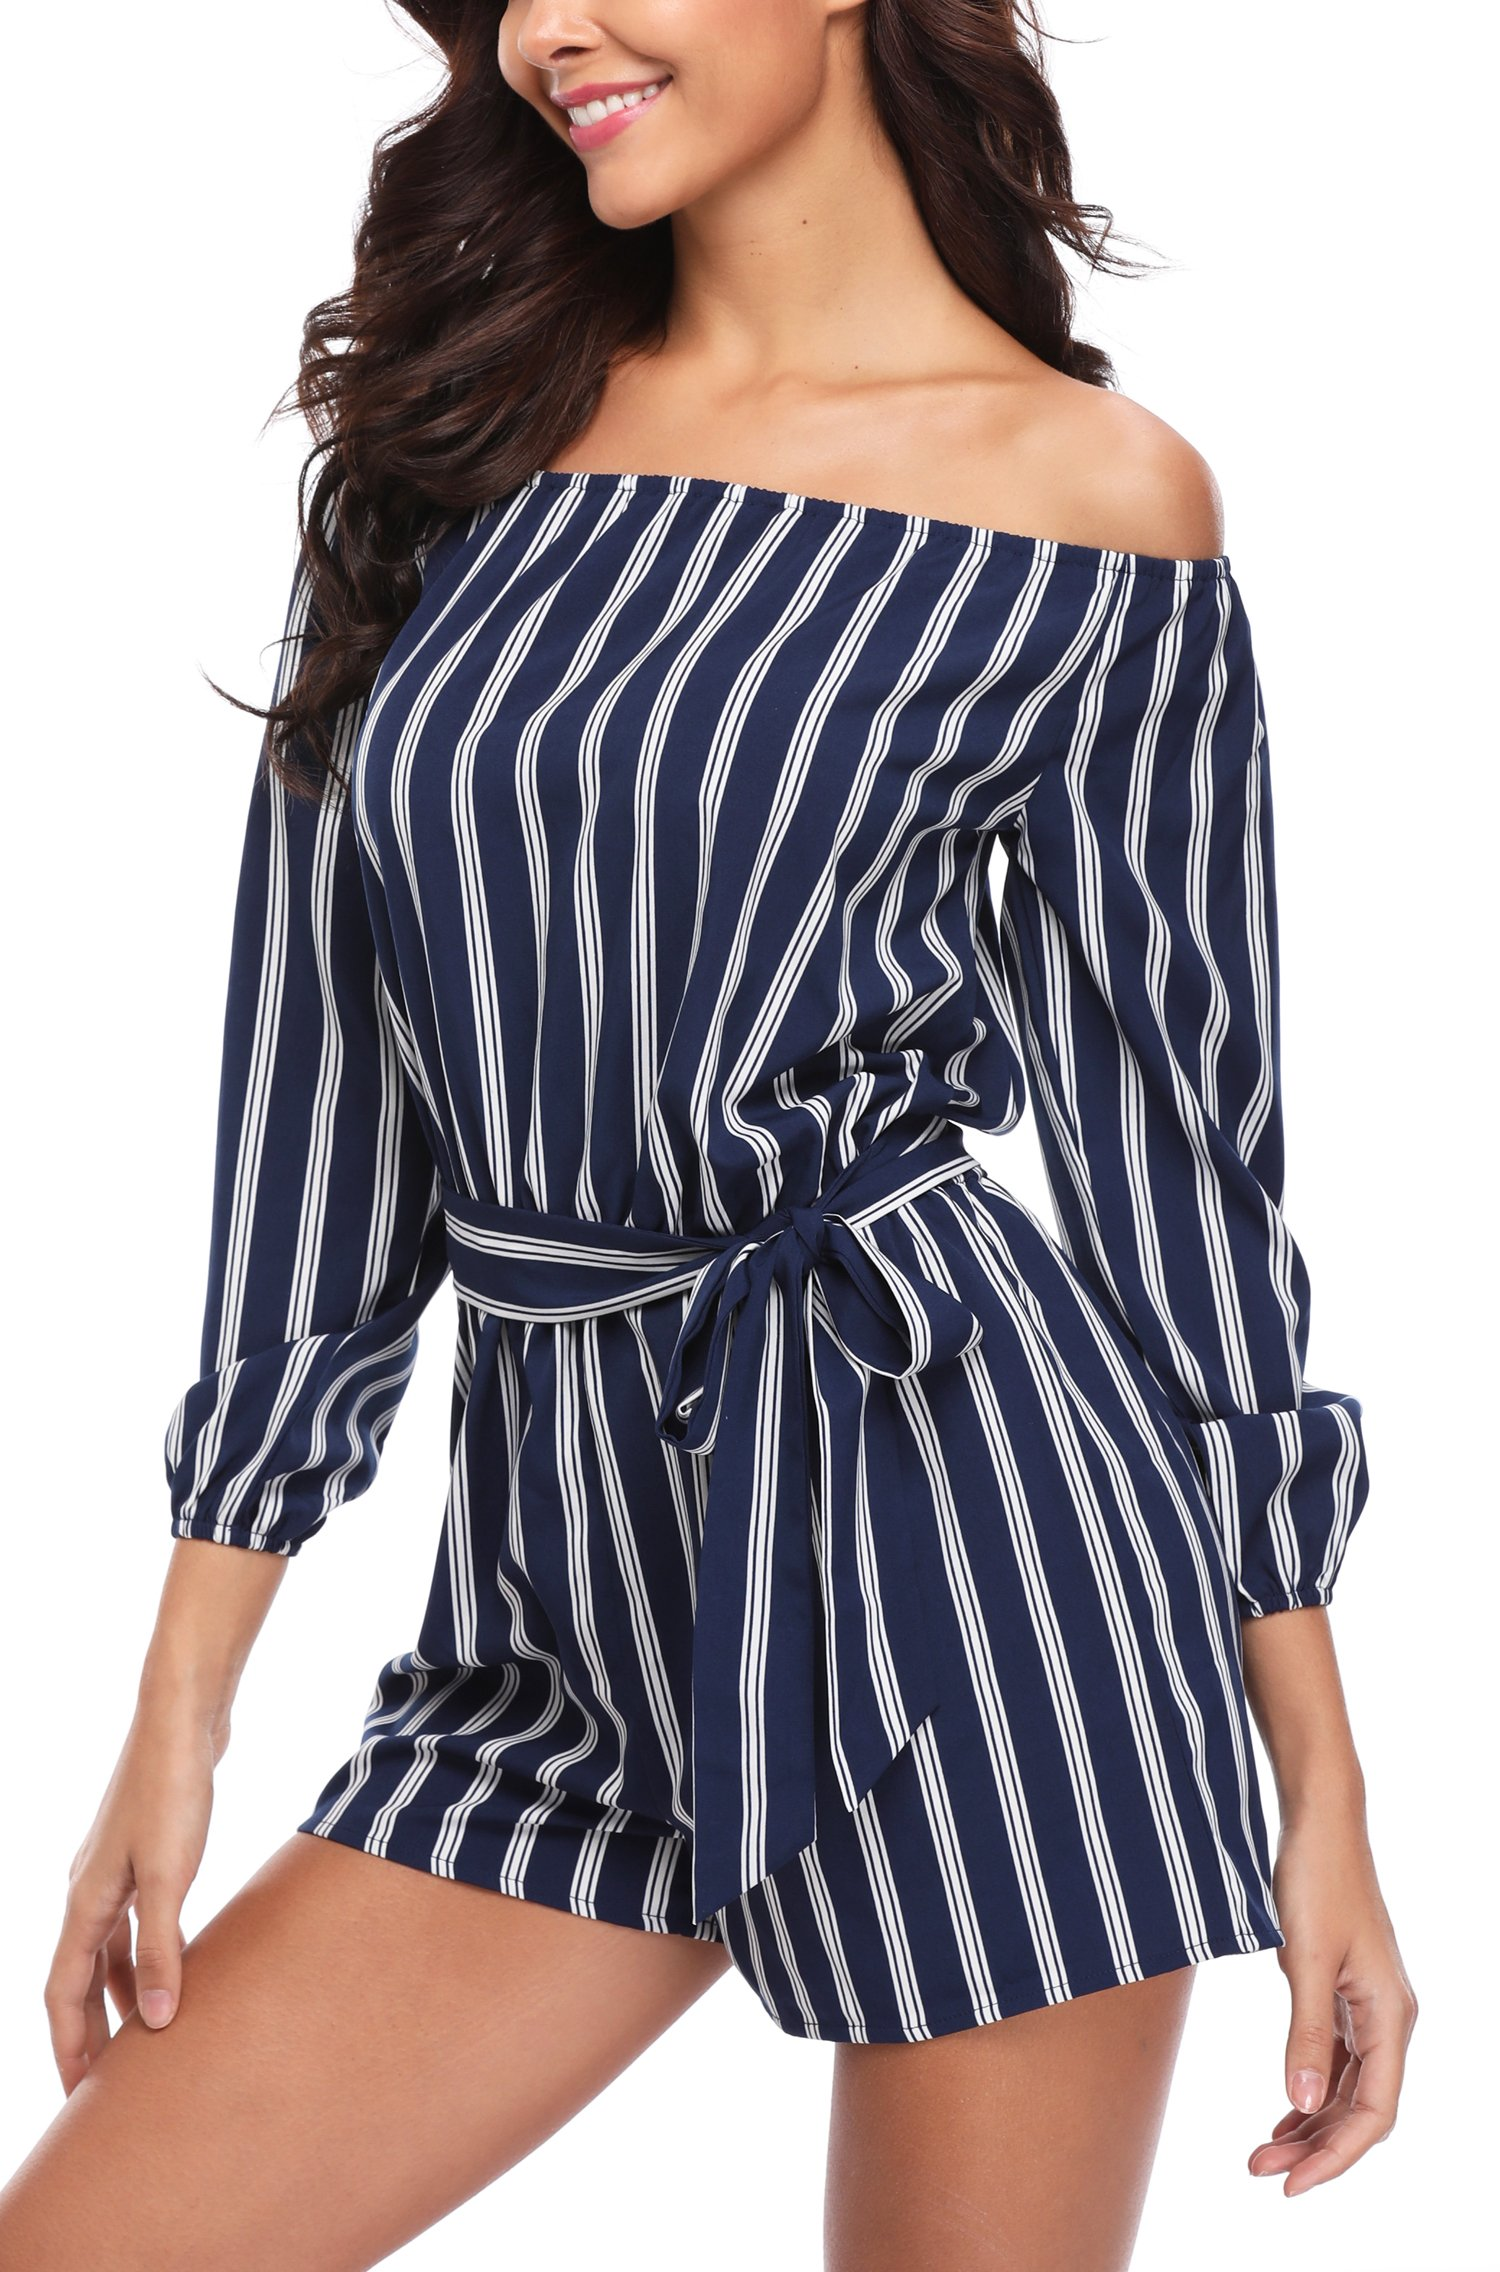 Jumpsuit for Women Off Shoulder 3/4 Sleeves Striped Strapless Sexy Cute Casual Summer Rompers Playsuits